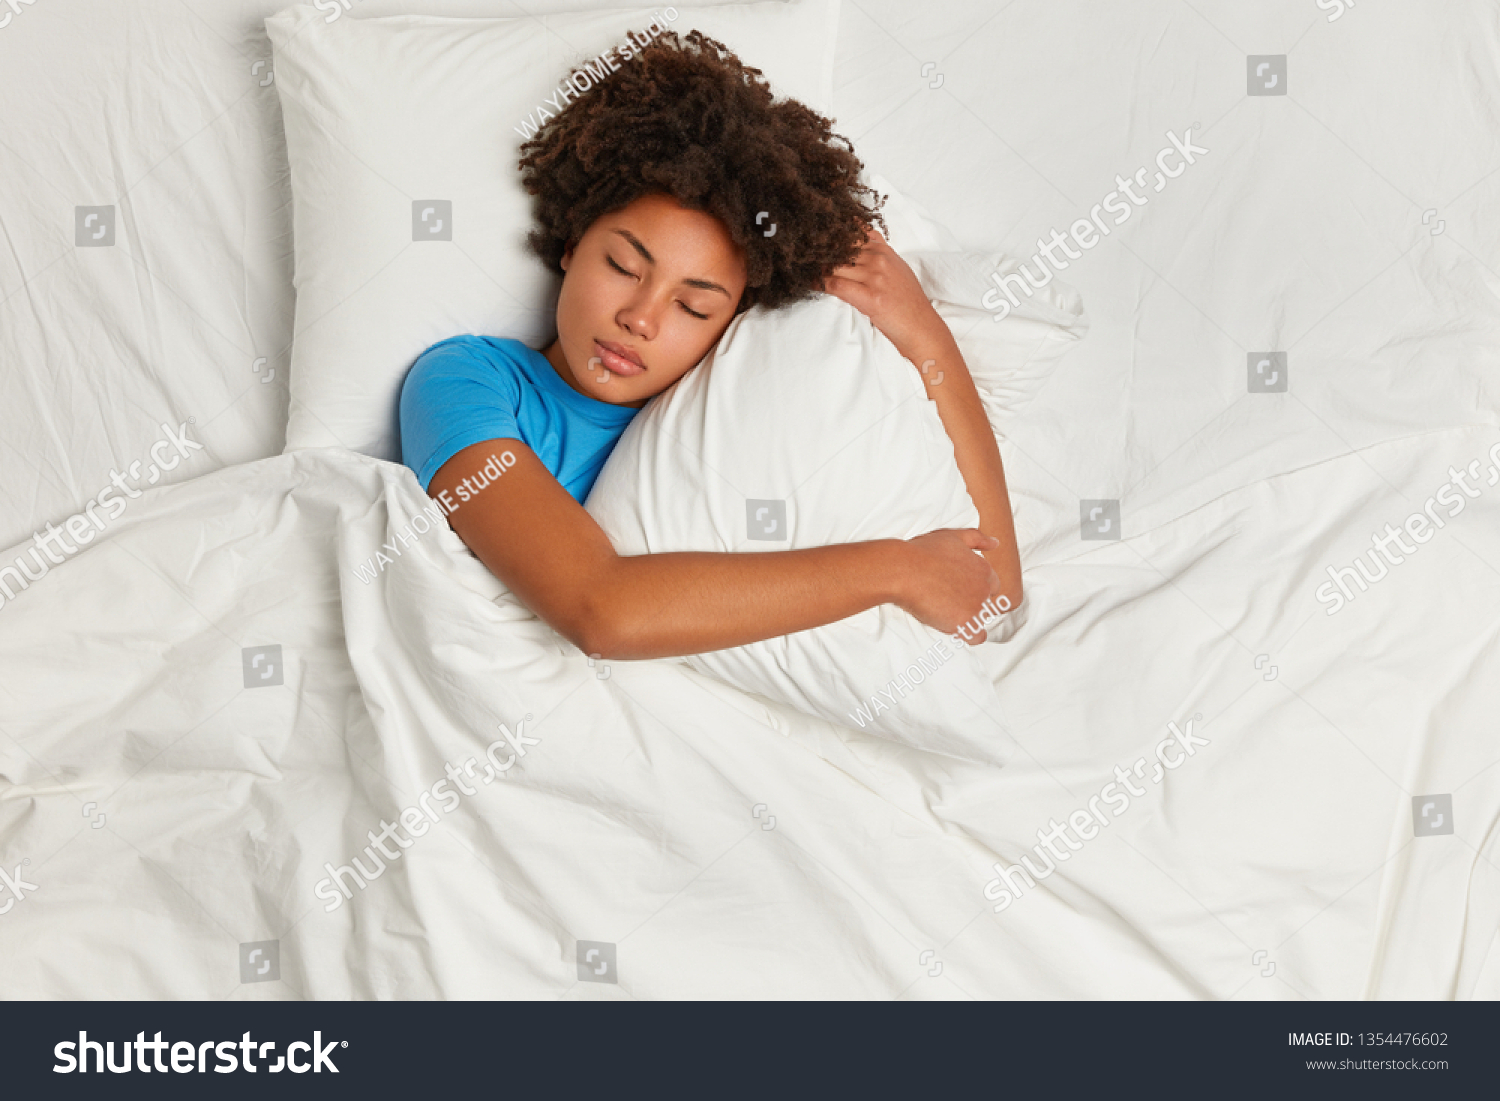 Dark skinned restful woman lying in bed and sleeps peacefully, hugs pillow, enjoys comfort and softness of bedclothes, wears blue t shirt, has healthy sleep at night. Good rest and bed time. #1354476602